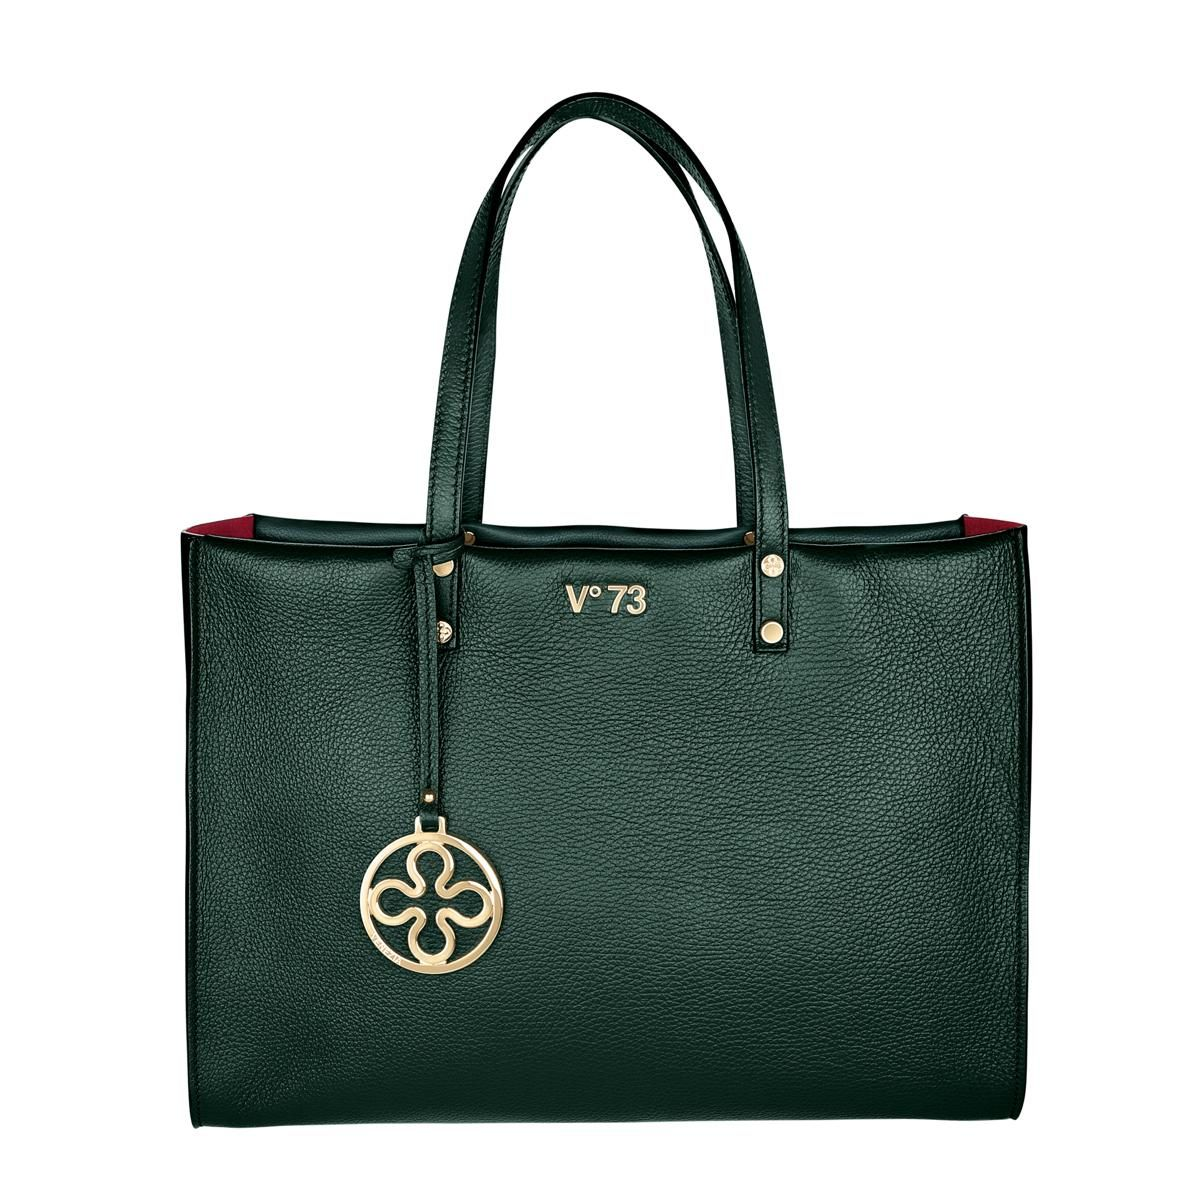 #V73 Venezia Green Gables Leather Bag whit zip closure , Charms shown in photo included, Metal feet at the base 39 x 28 x 12 Shop now: http://www.v73.it/en/venezia